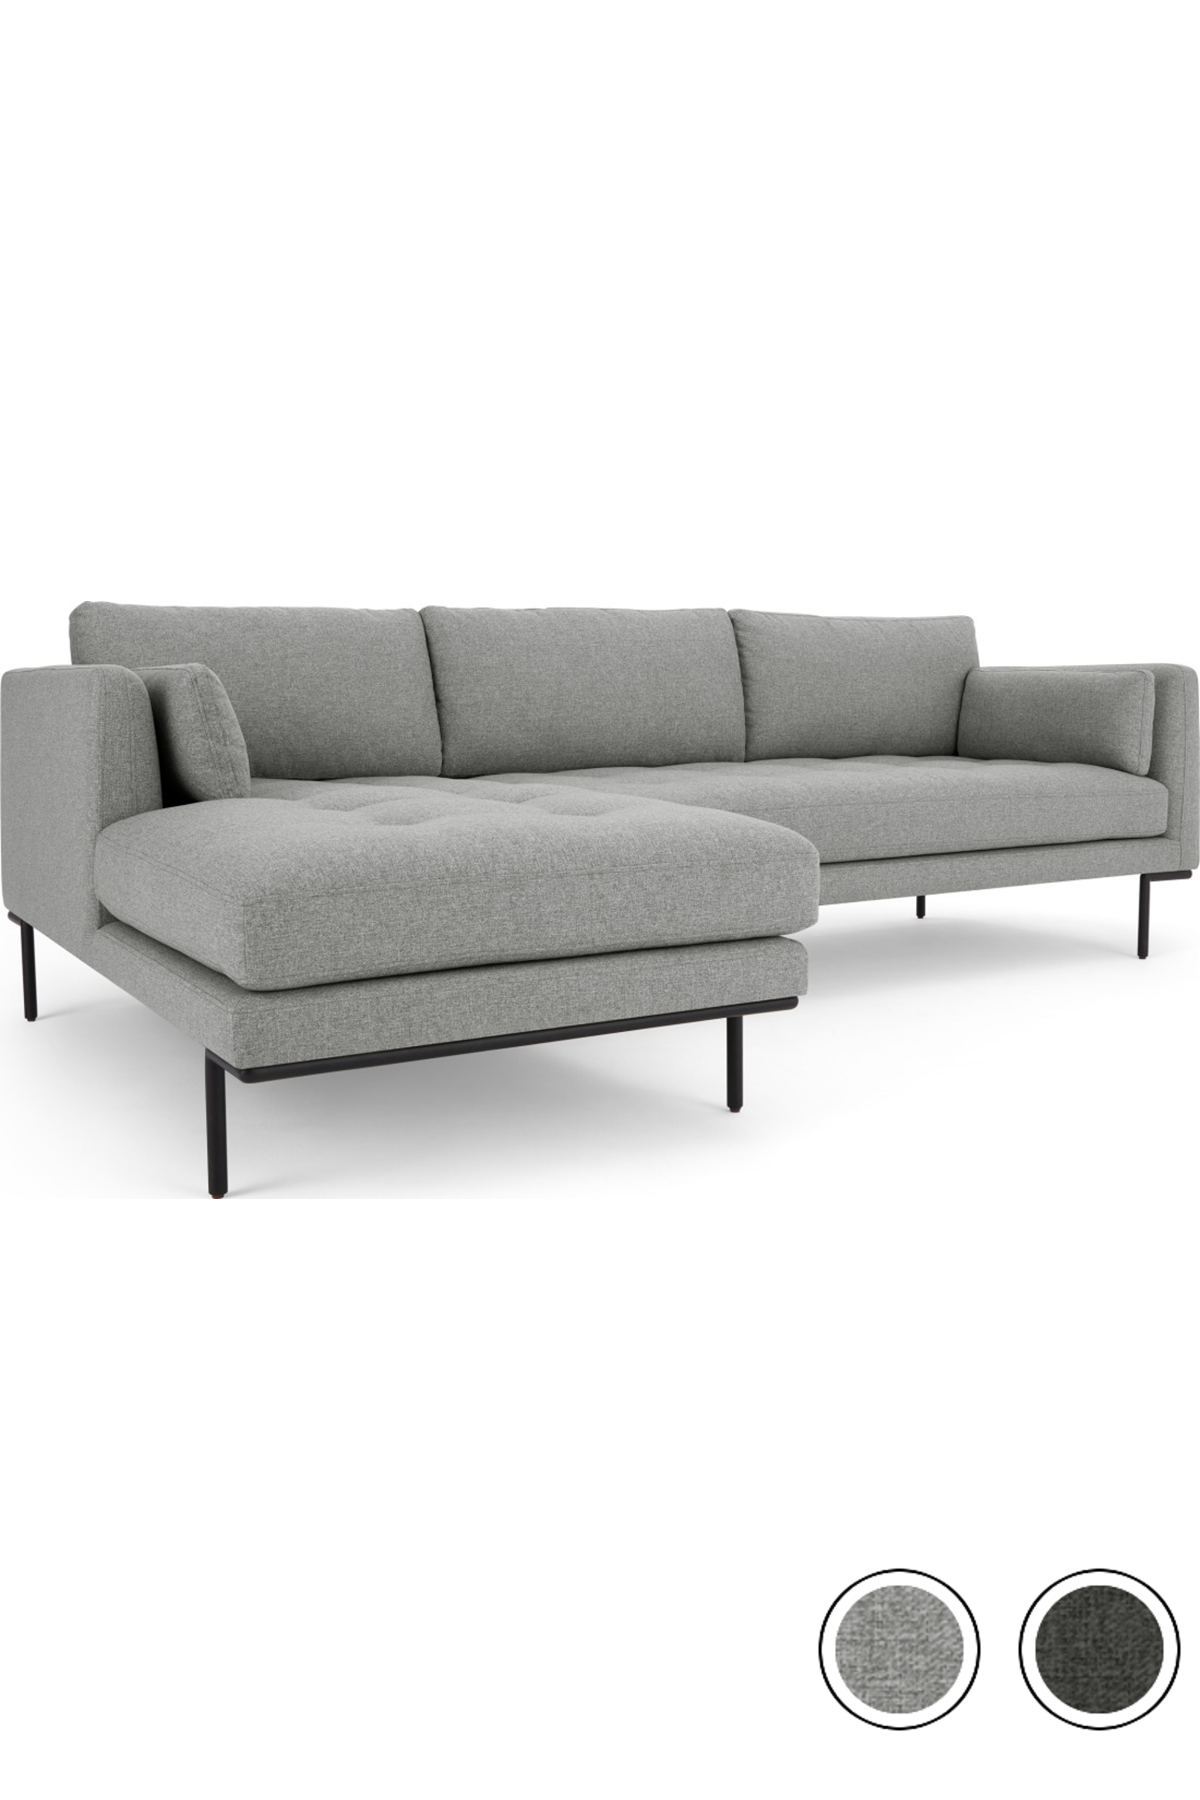 Made Chaise End Corner Sofa Mountain Grey New Harlow From Made Com Chaise Sofa Living Room Corner Sofa Sofa